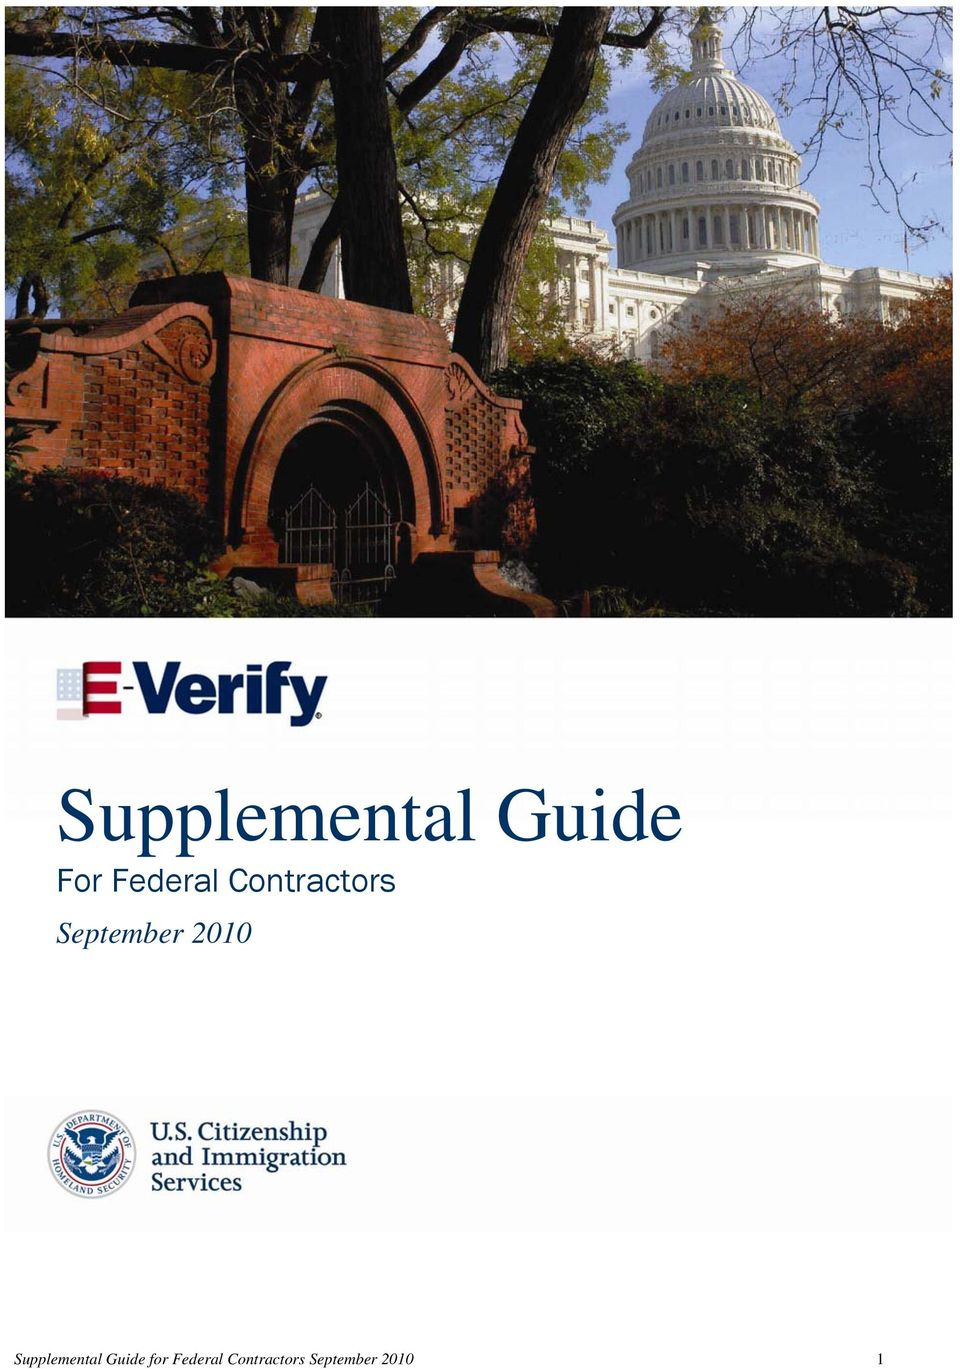 2010 Supplemental Guide for